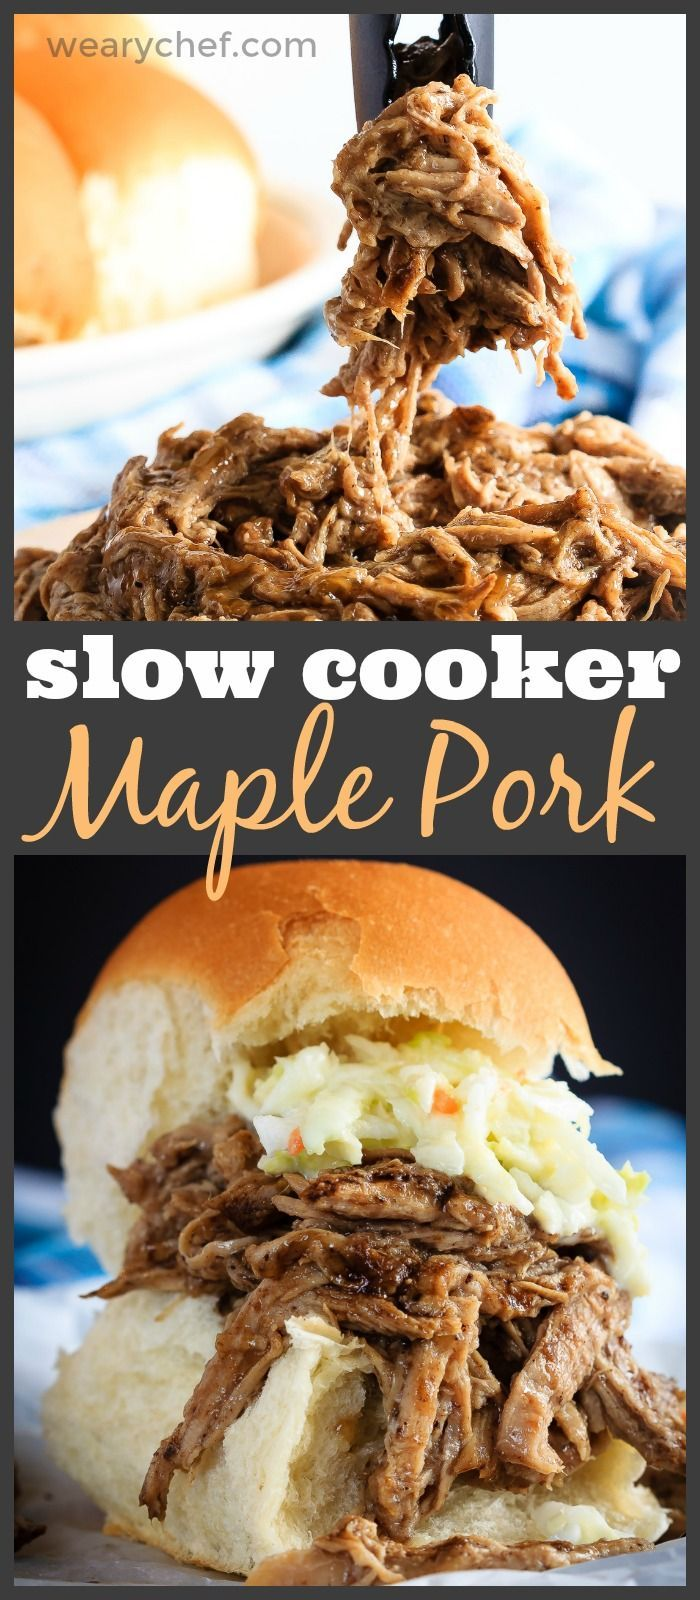 This tender maple pork tenderloin takes just minutes to get into the slow cooker and is amazing piled onto a soft roll for an easy dinner!